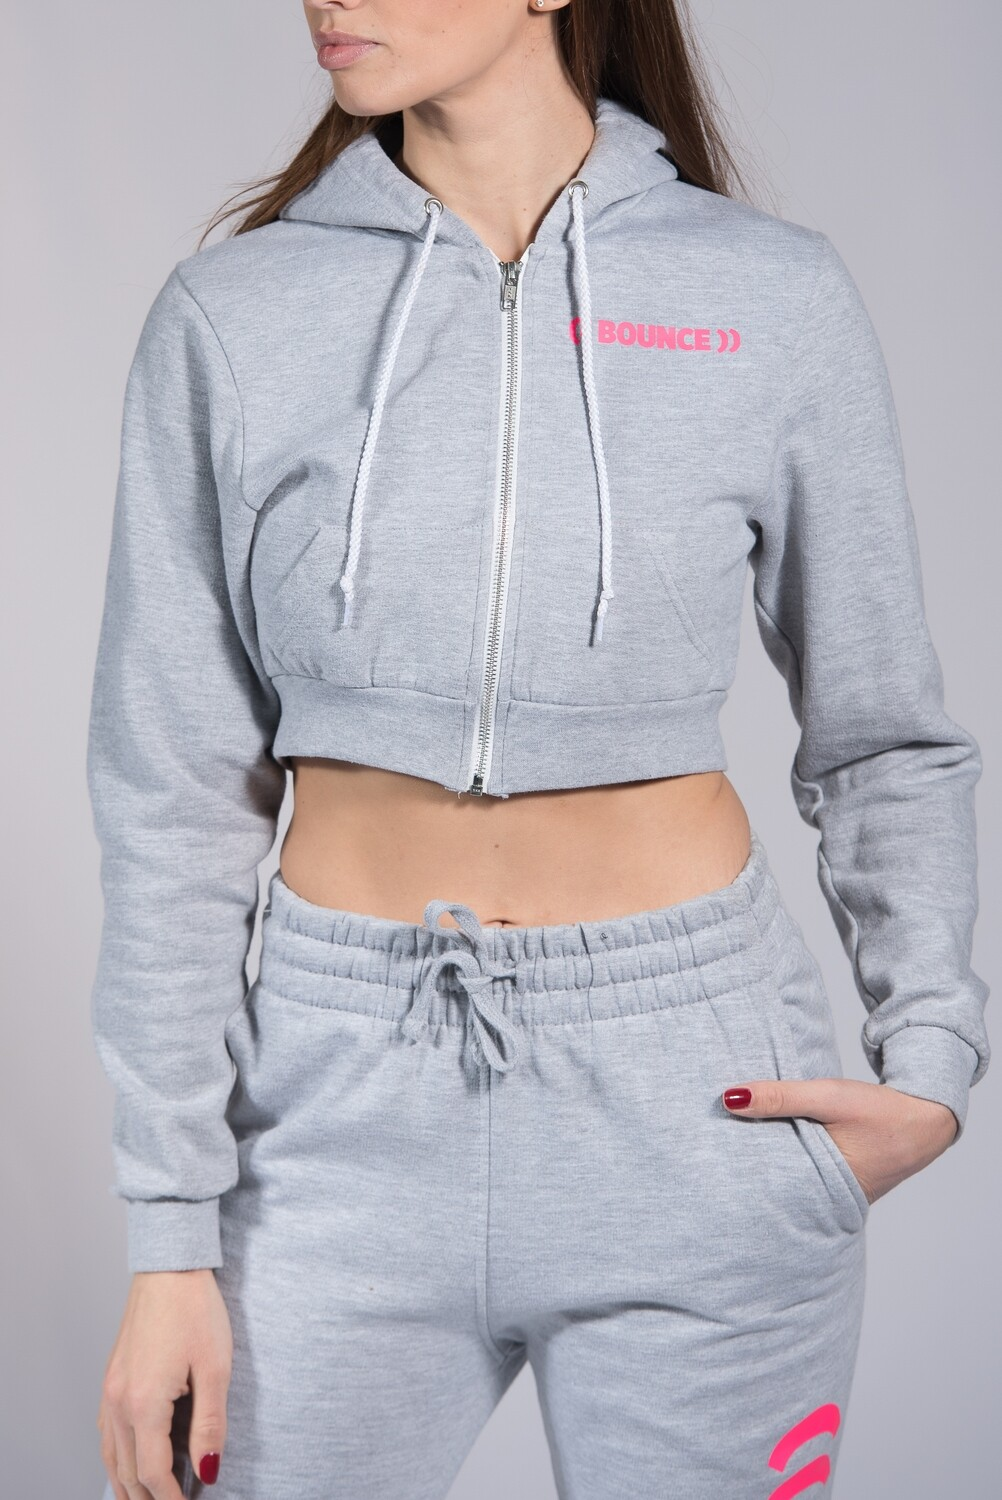 Zip Hoodie, Ladies Cropped - Grey & Pink